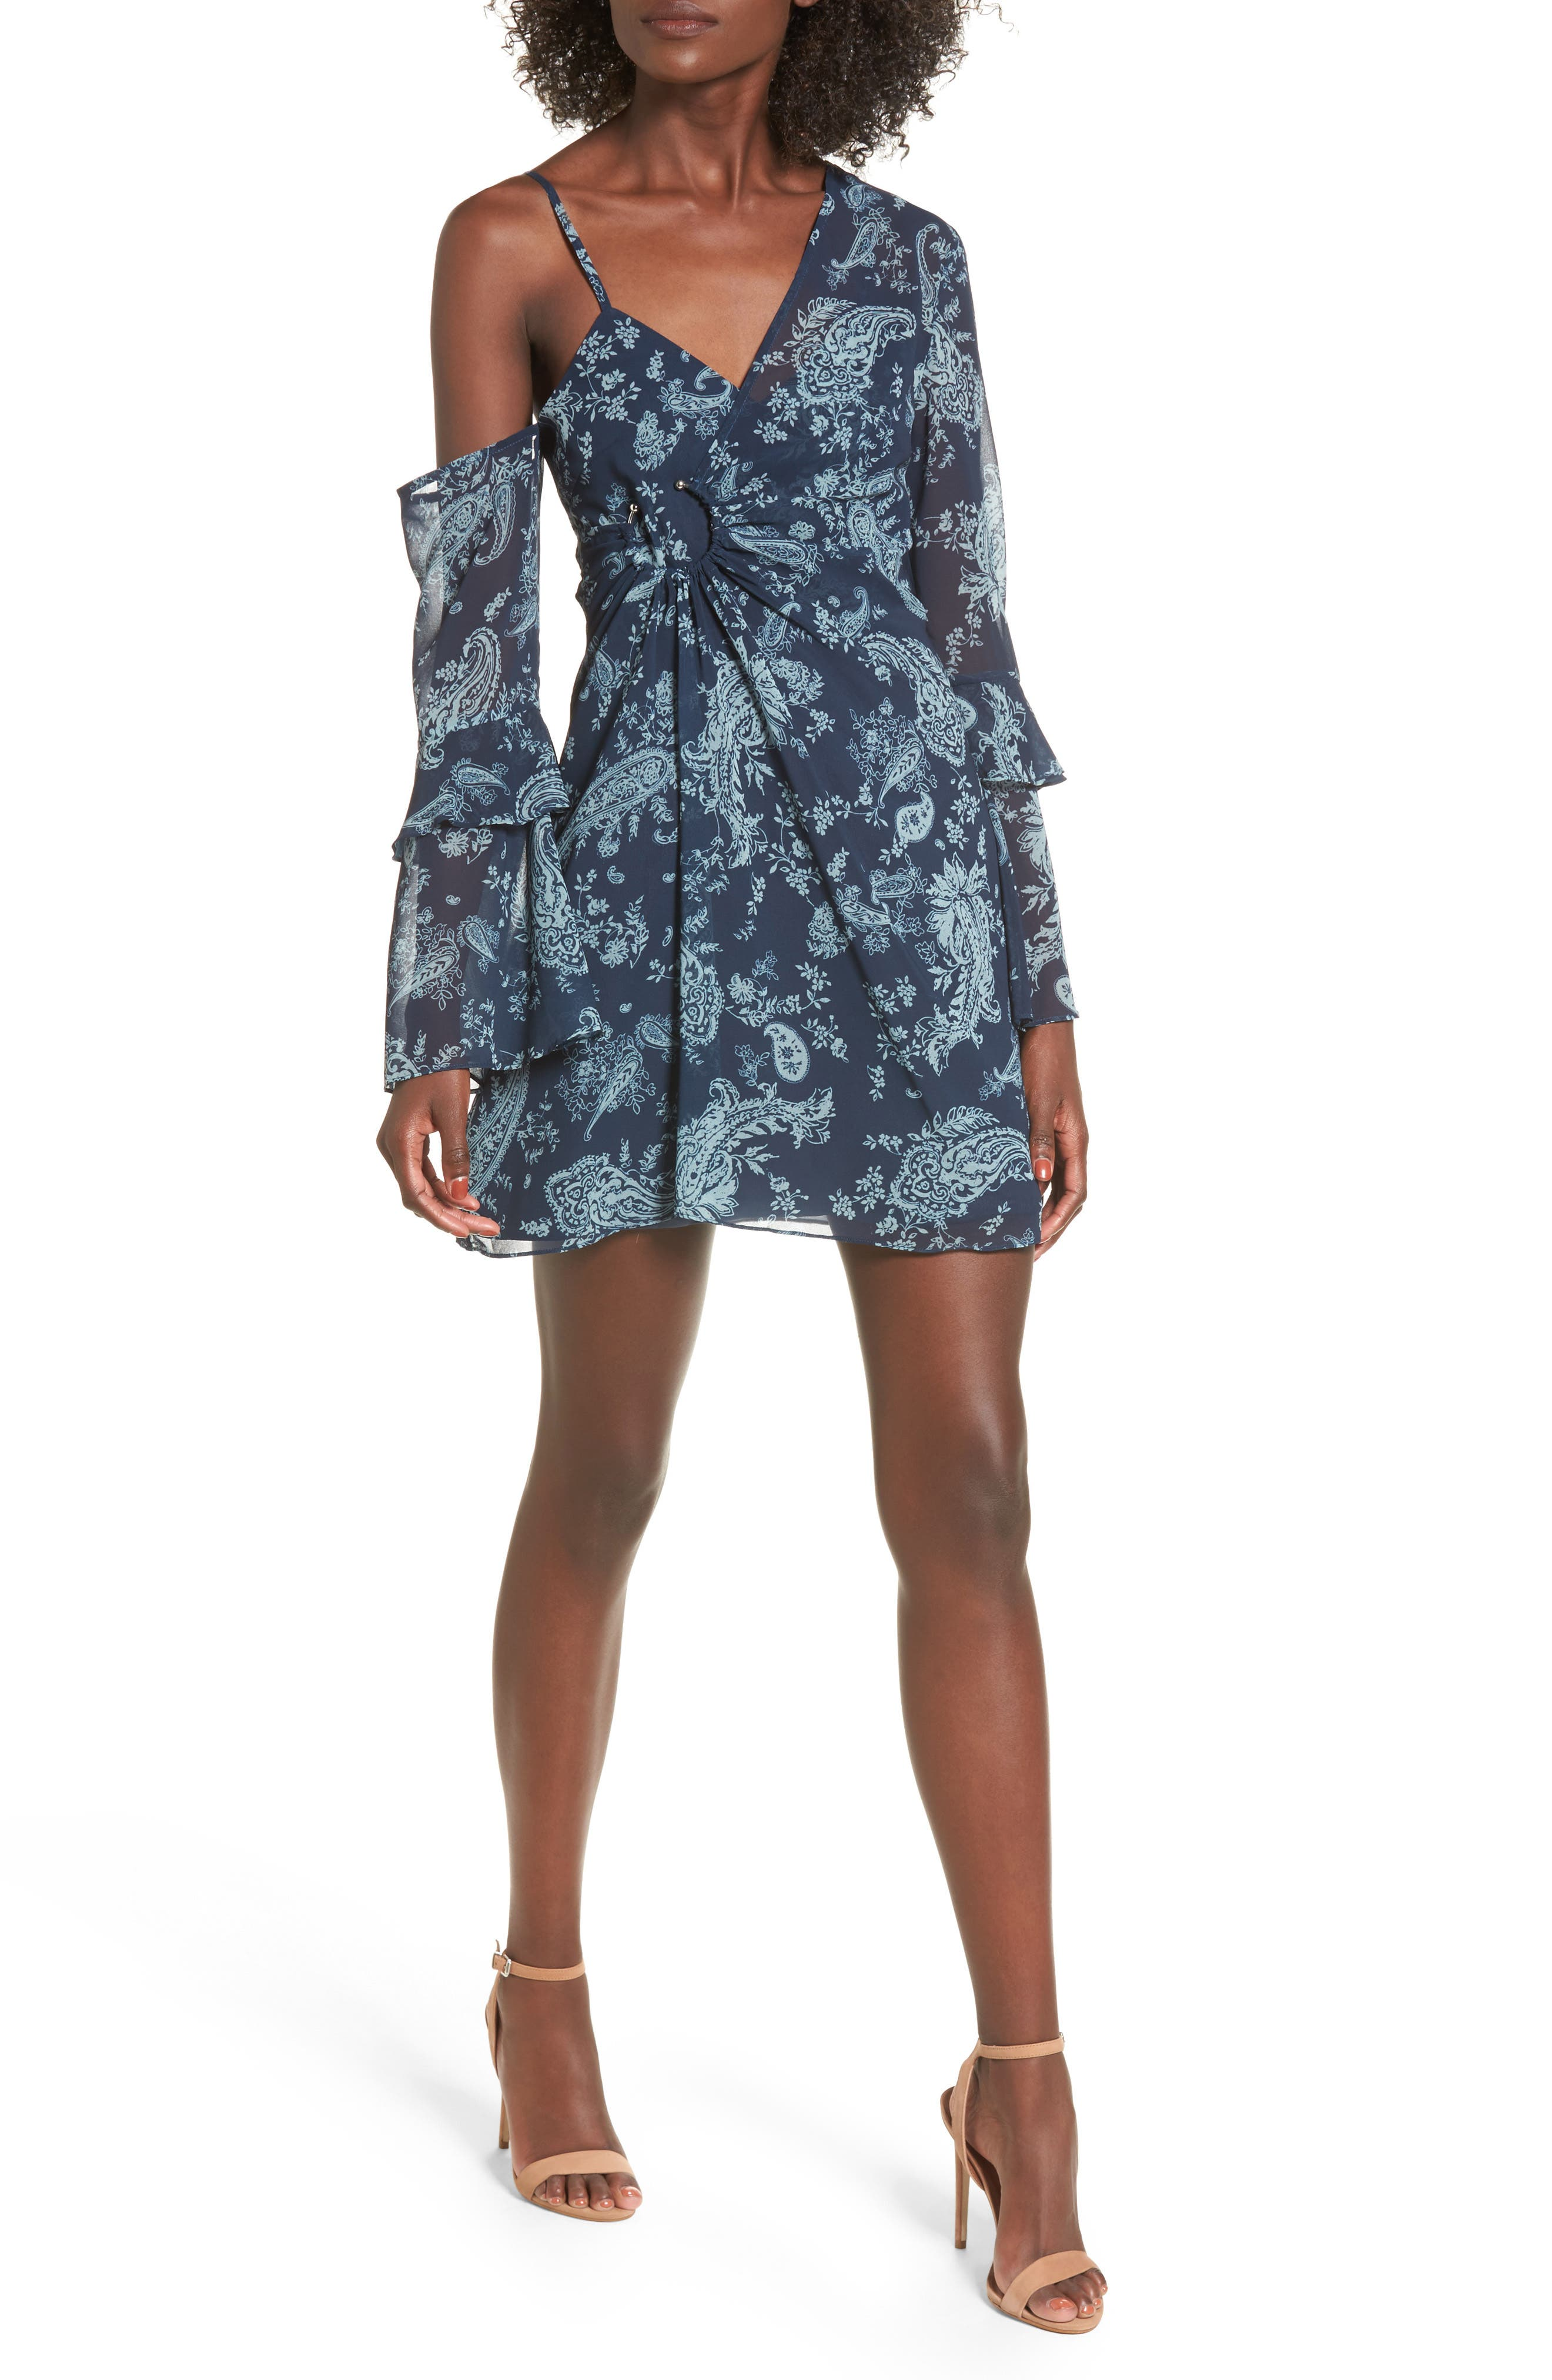 Go With It Minidress,                         Main,                         color, 401